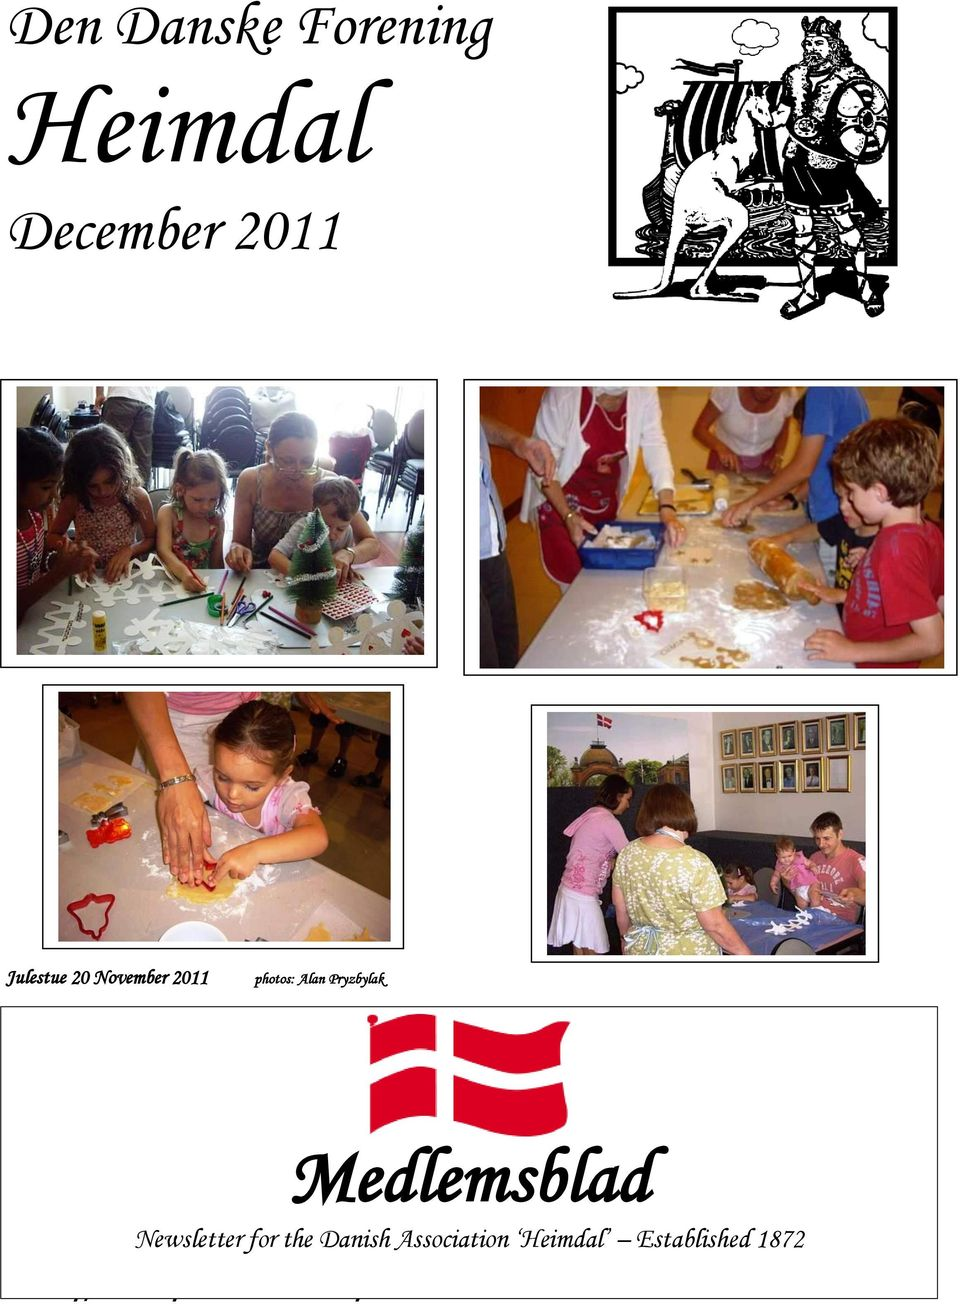 The closing date for the January/February issue is 18 January Medlemsblad Contributions 2012.